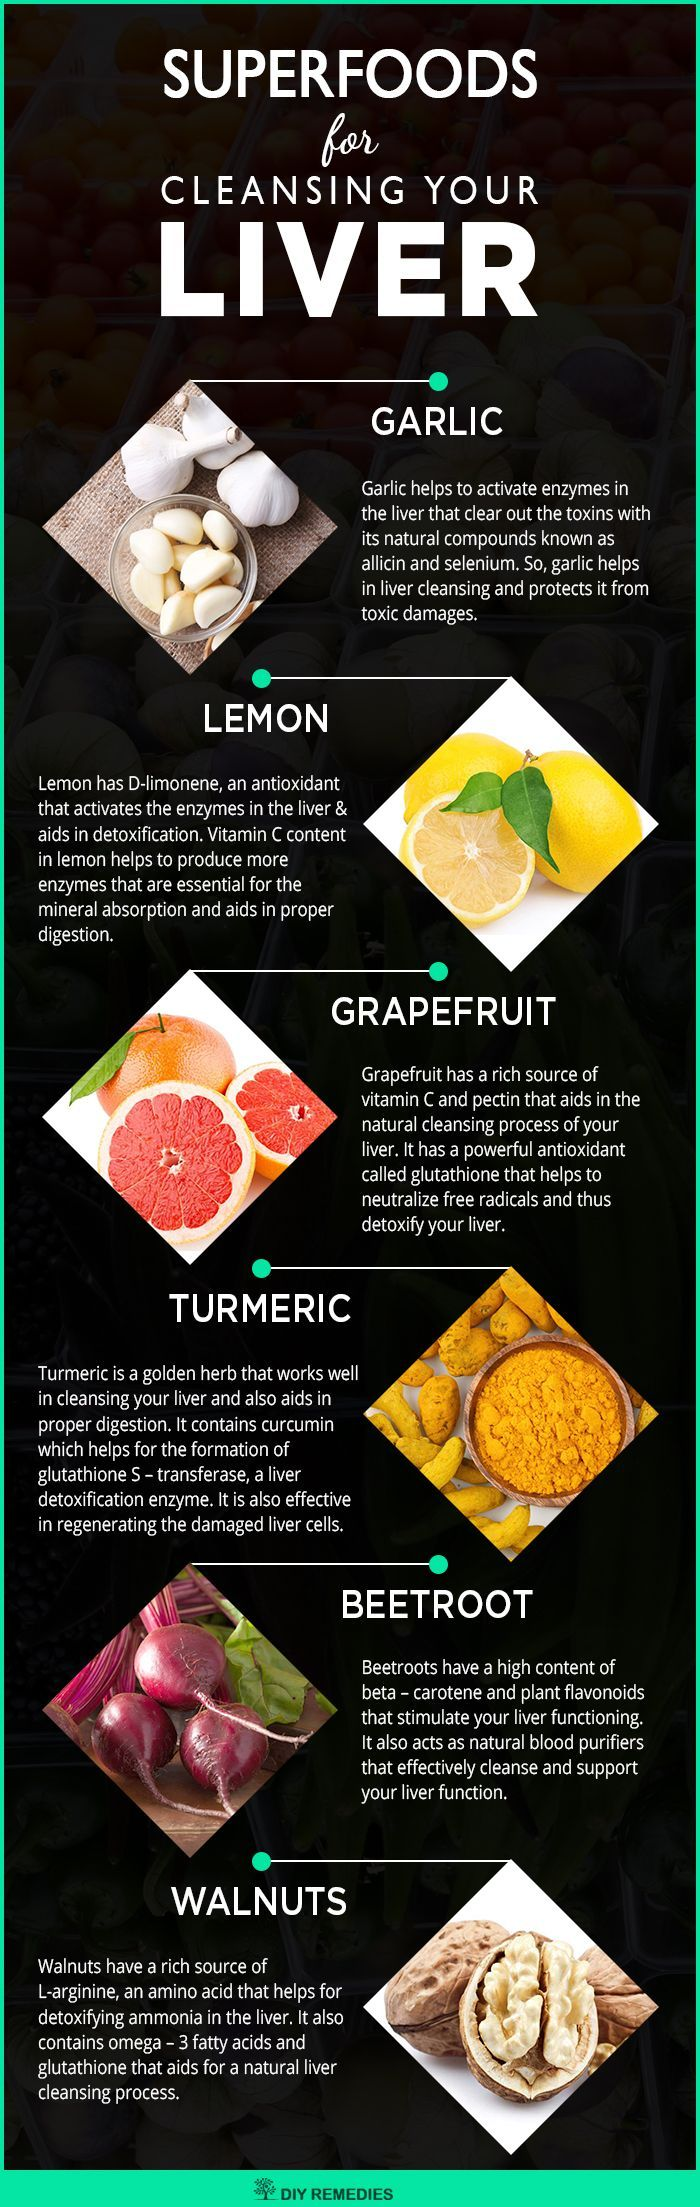 Best Liver Cleansing Superfoods  Here is the list that covers the best superfoods which are widely used to cleanse your liver. Go through these foods and include them in your diet to enhance your liver functioning.  #LiverCleansing #Superfoods